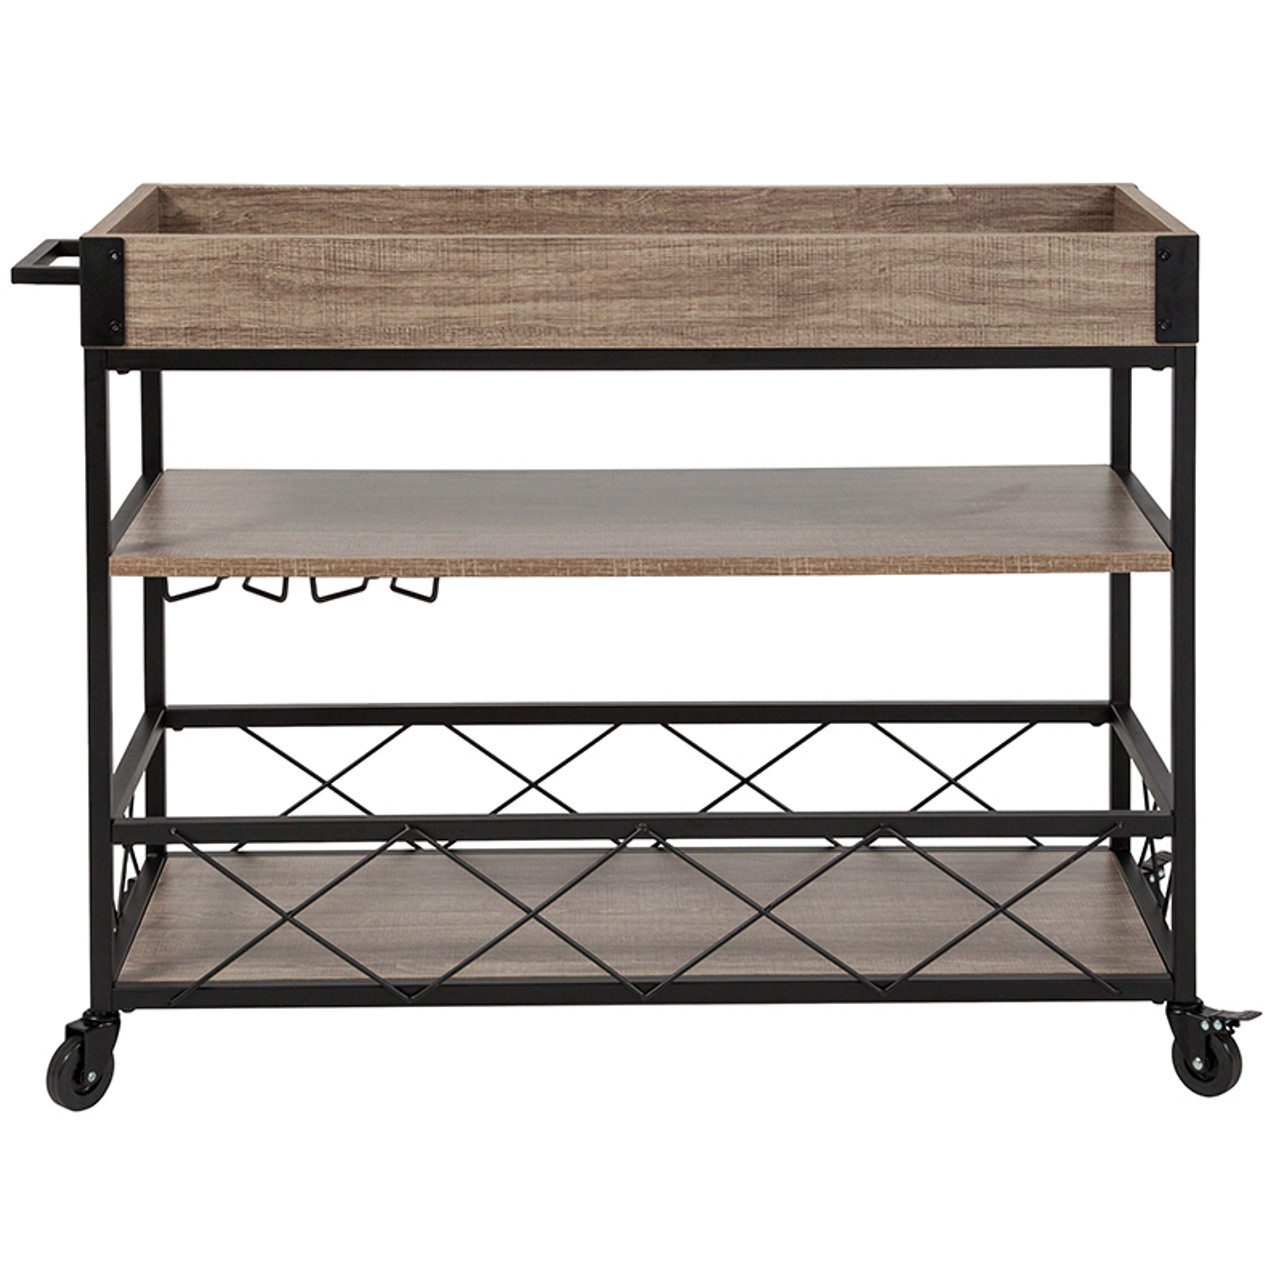 Kitchen Serving and Bar Carts